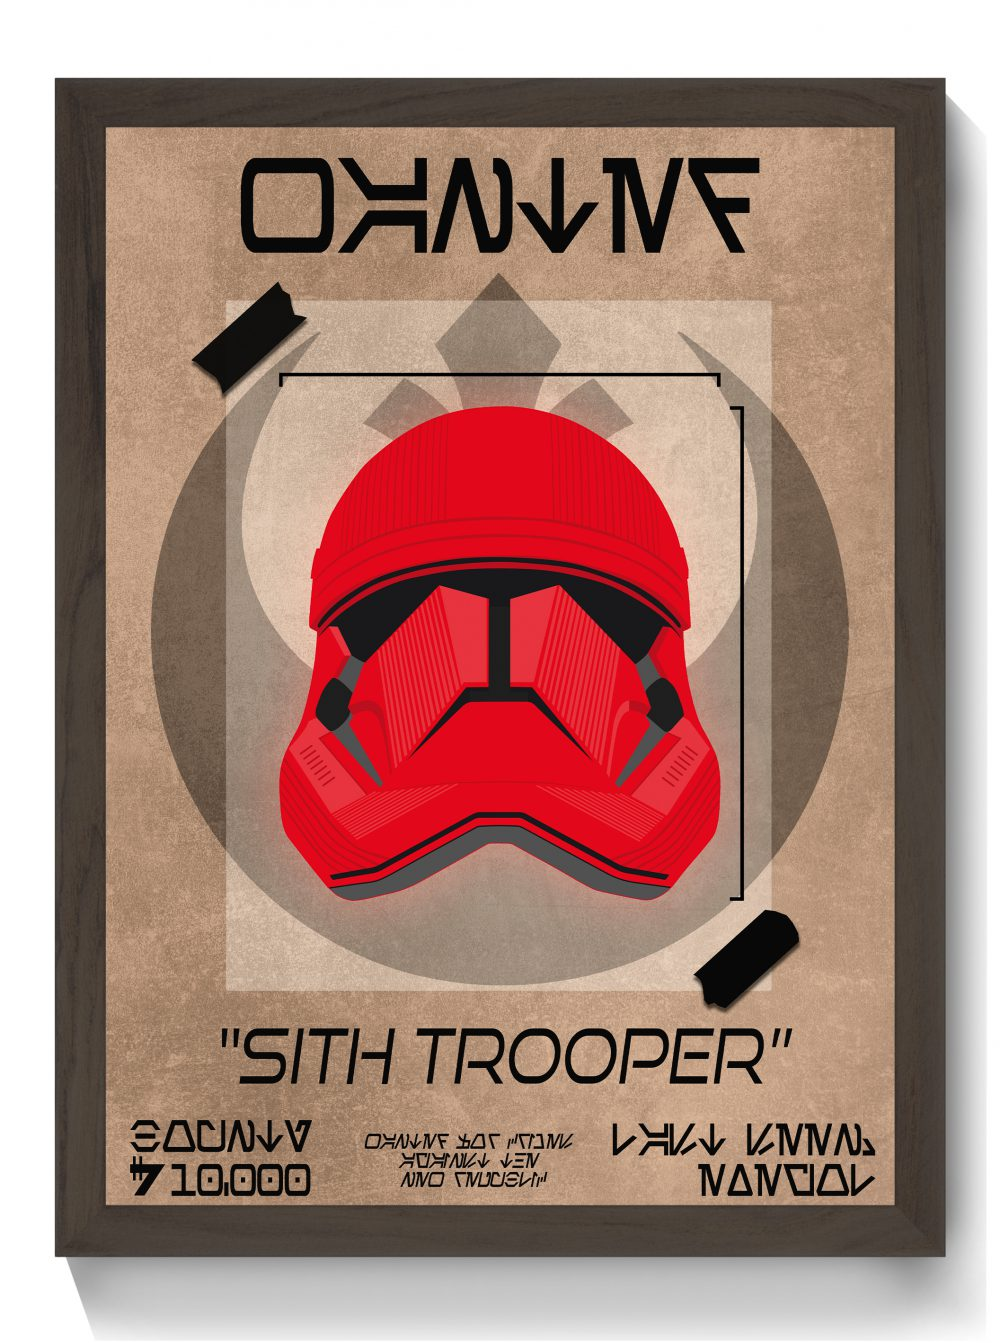 Sith Trooper Wanted Poster